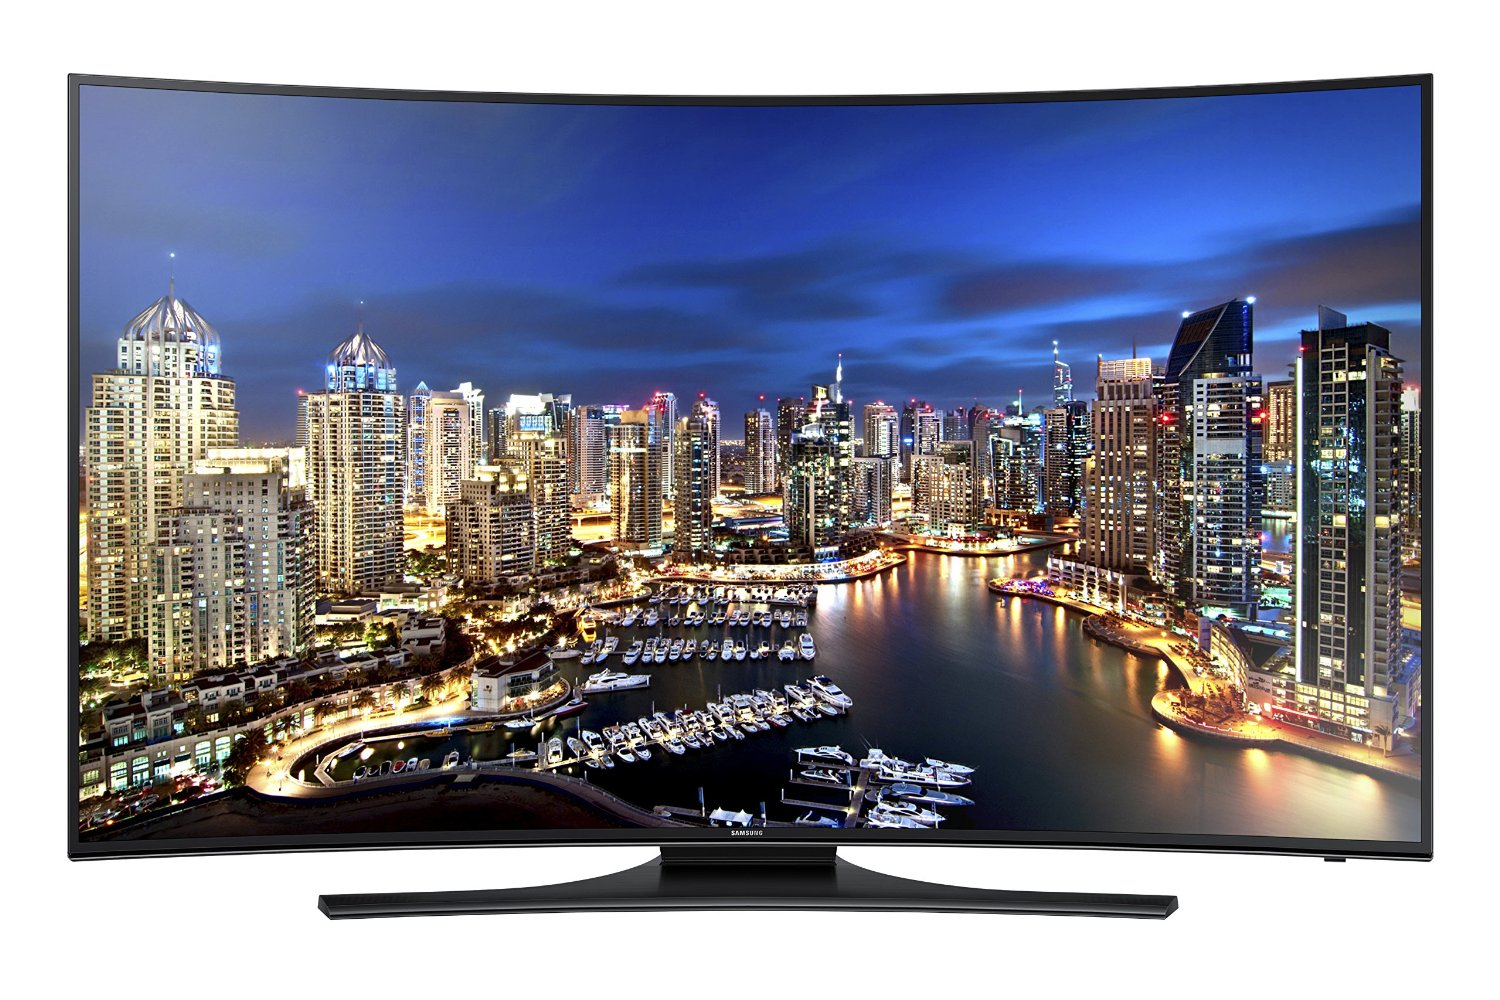 samsung electronics un55hu7250 curved 55-inch 4k uhd 120hz smart led tv